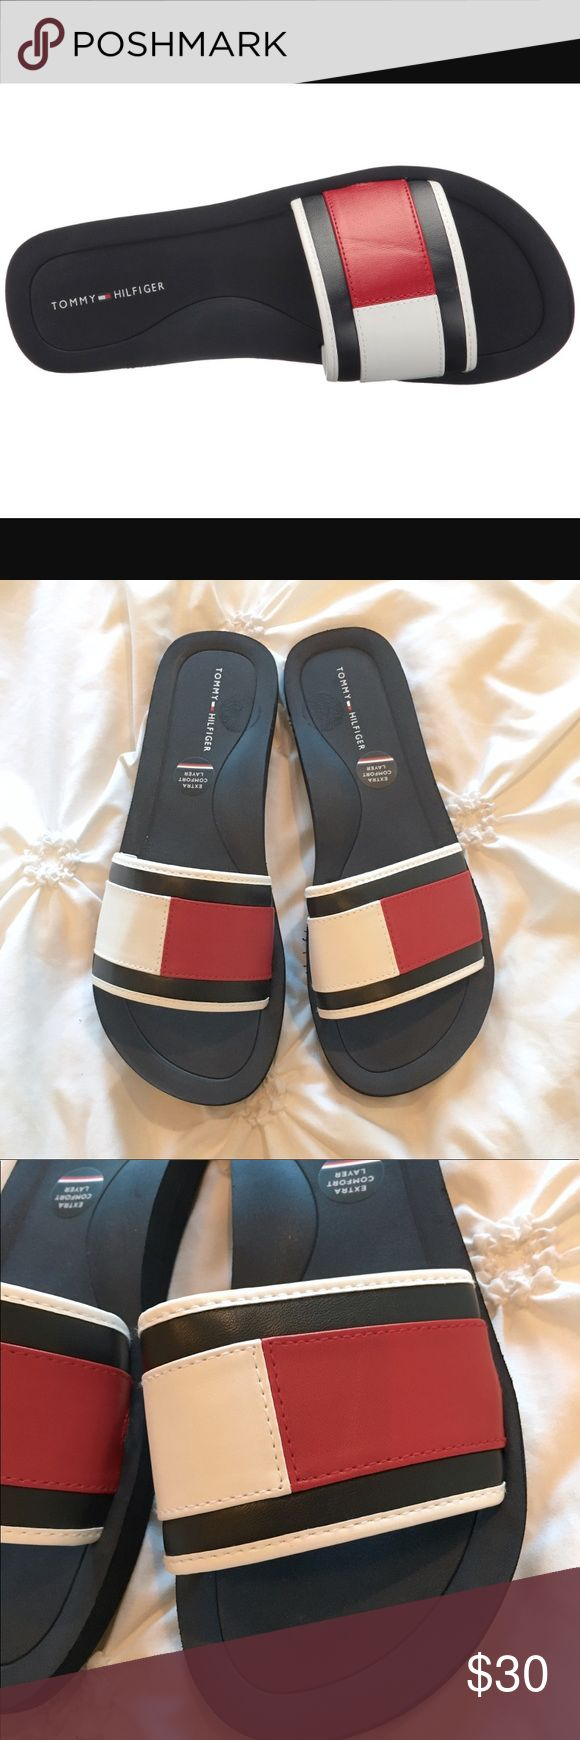 NWT Tommy Hilfiger Jumbo Logo Slides Brand new with tags Tommy Hilfiger foam slides with the jumbo logo on them. I have two pairs, one size 8 and the other a size 9. They run in whole sizes and I recommend if you're a half size to size down to the nearest whole size. Personally I'm a size 8.5 and the size 8 fits me perfectly! Tommy Hilfiger Shoes Sandals